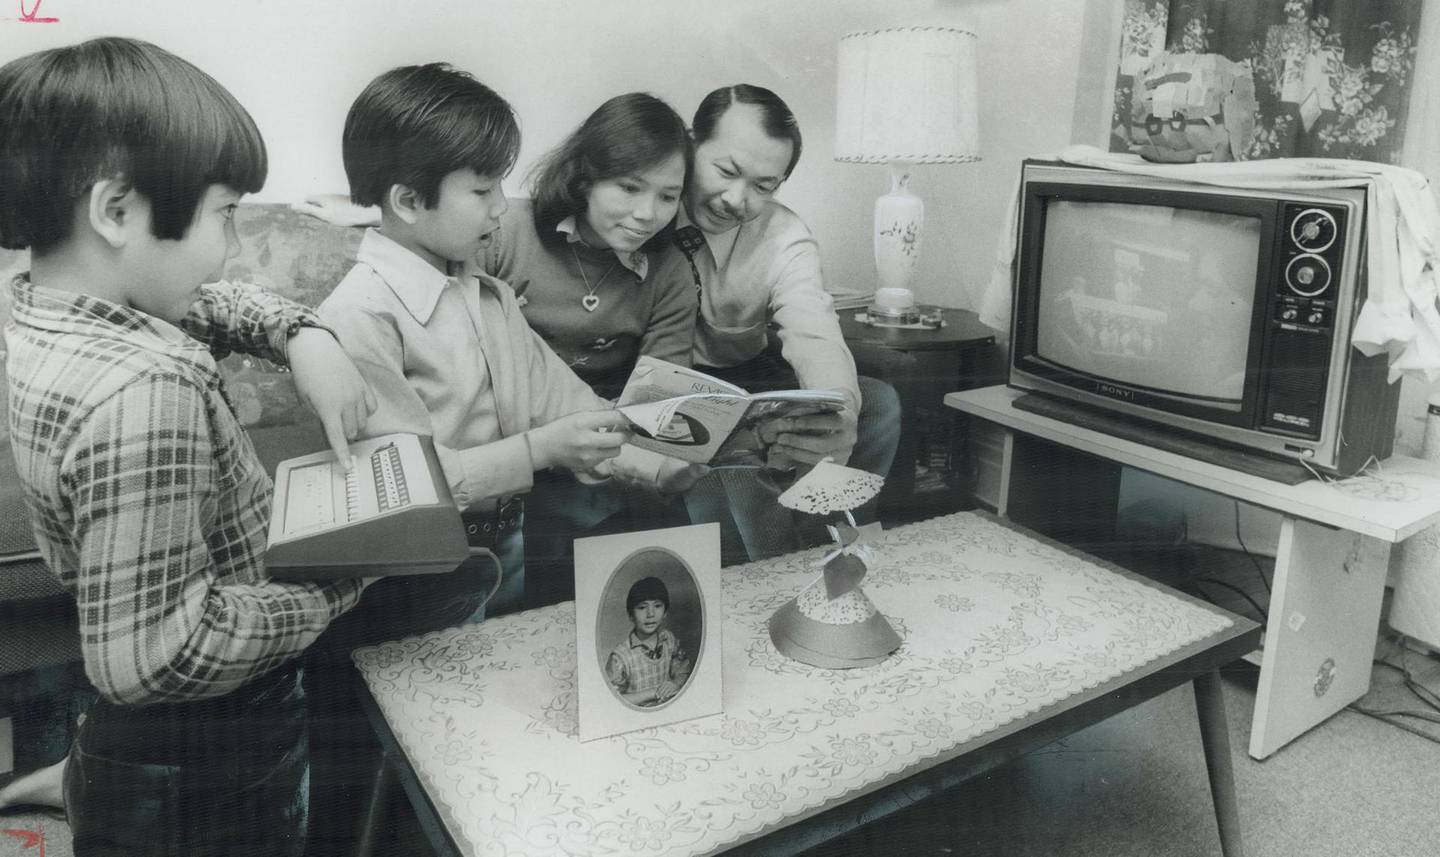 CANADA - MARCH 09: Always smiling: The Nguyen family from Viet Nam smiled in adversity when they arrived in Canada and had nothing; and they're smiling a year later now; they've made a new life for themselves. From left; Quang 7; Quy; 9; Vinh Nguyen and husband Can Khac enjoy TV at their Carlaw Ave. home. This is a great country for all of us; says Can Khae. Toronto Star readers who saw the picture of the refugees sitting in their bare living room responded magnificently with offers of everything from jobs to furniture. (Photo by Colin McConnell/Toronto Star via Getty Images)